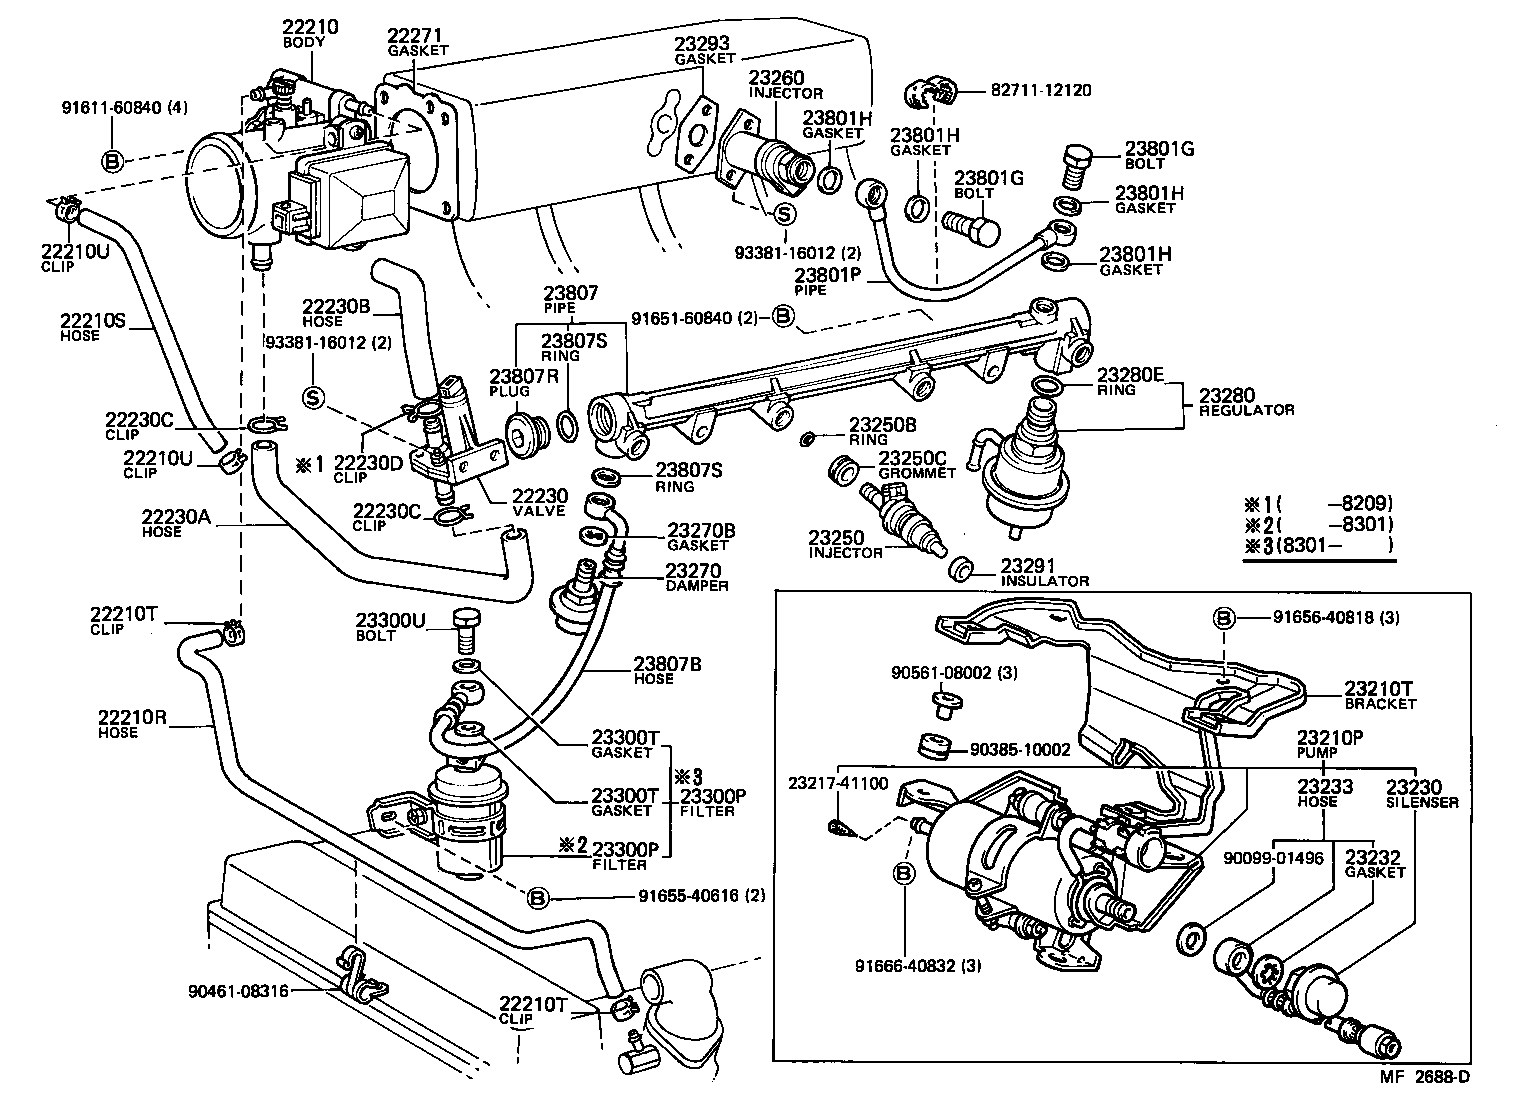 1990 Toyota Supra Engine Diagram Wiring Diagrams Chevy 350 Vacuum Hose Celica Car Parts Body Kit